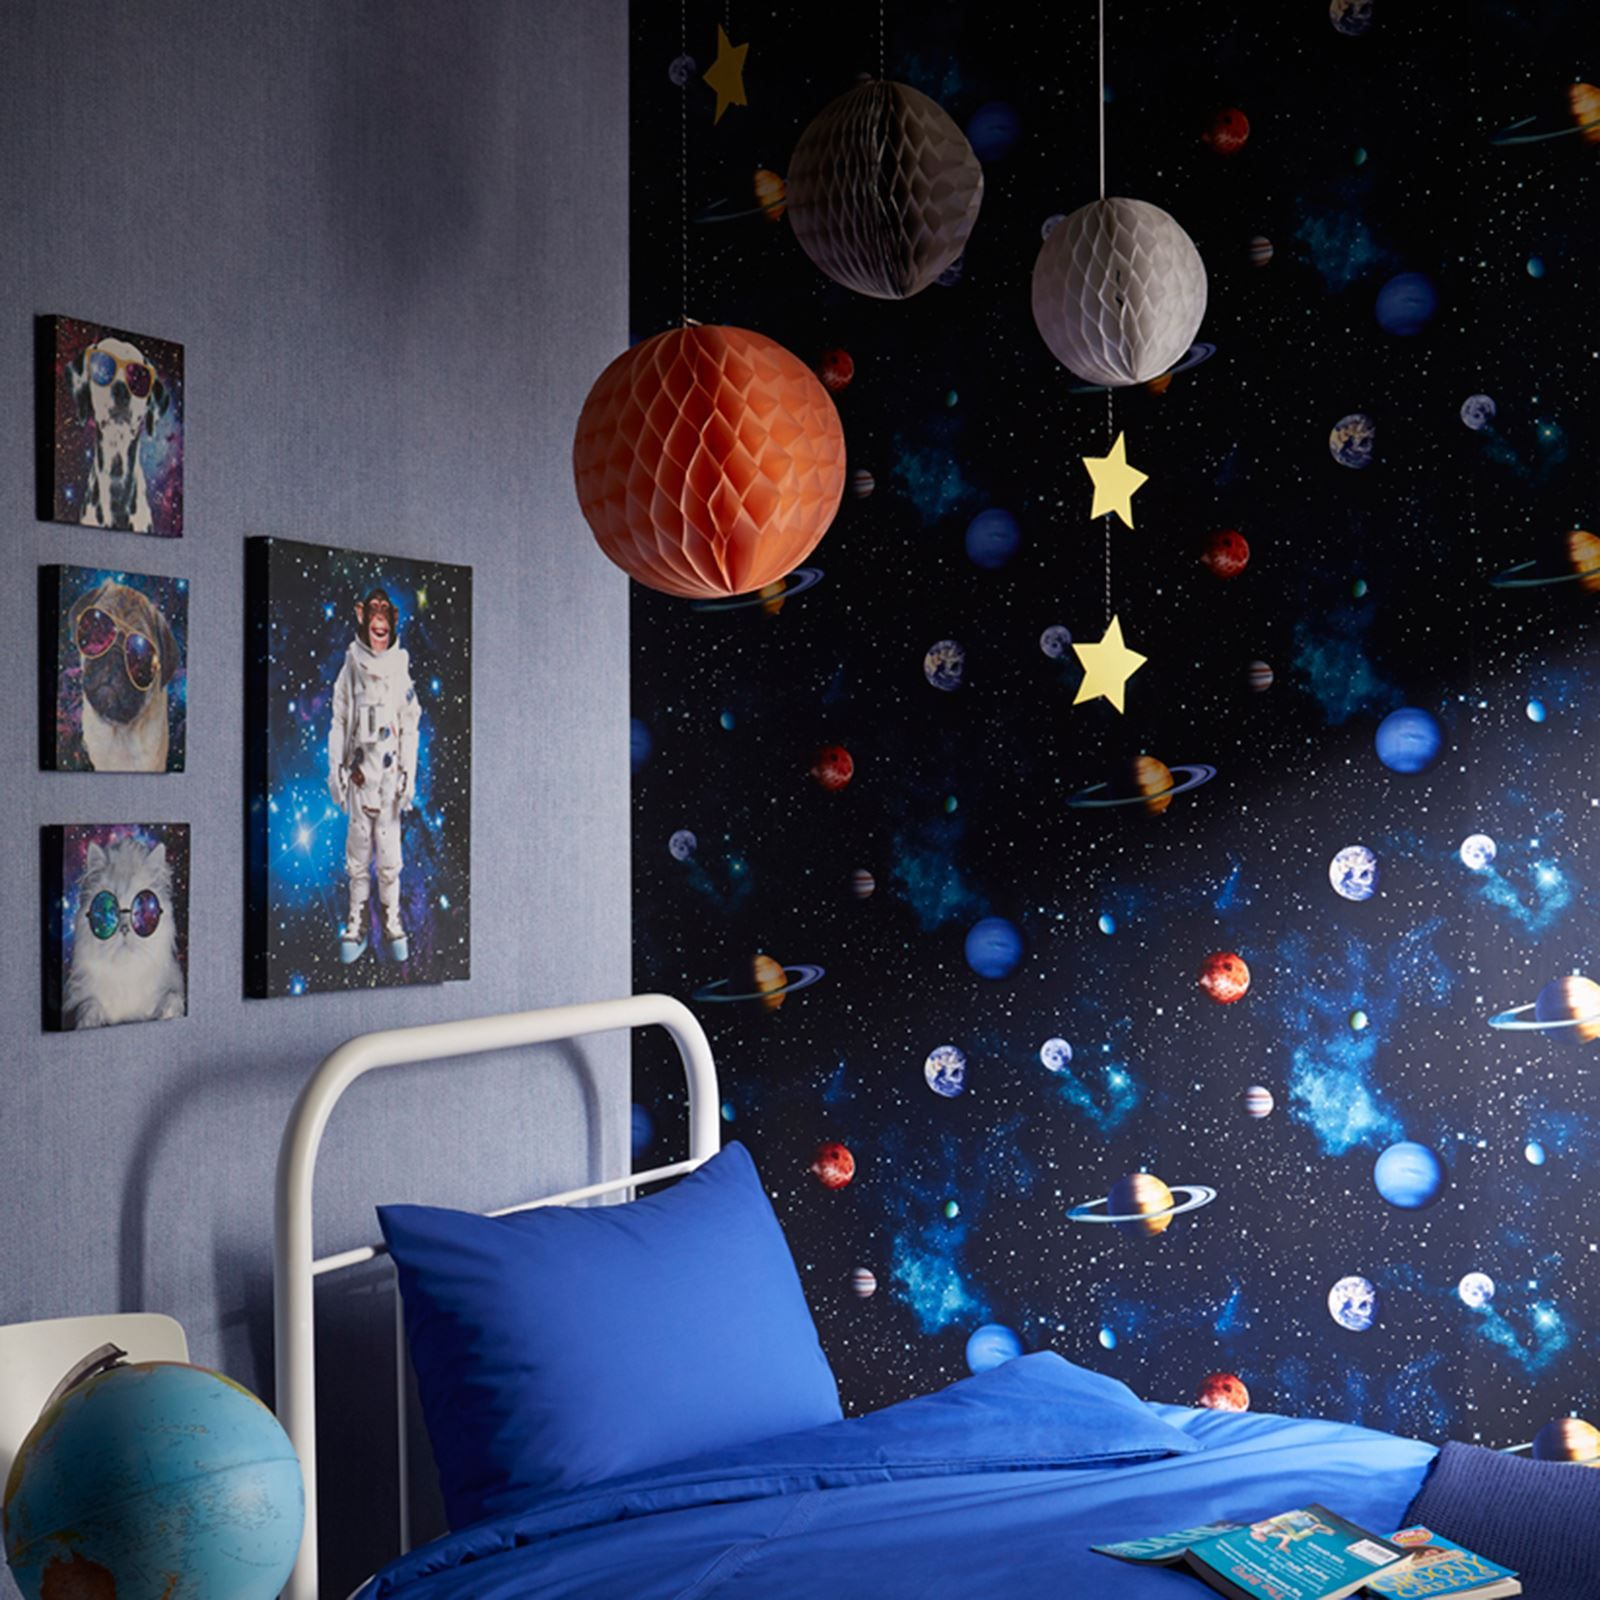 Pin On Space Theme Room